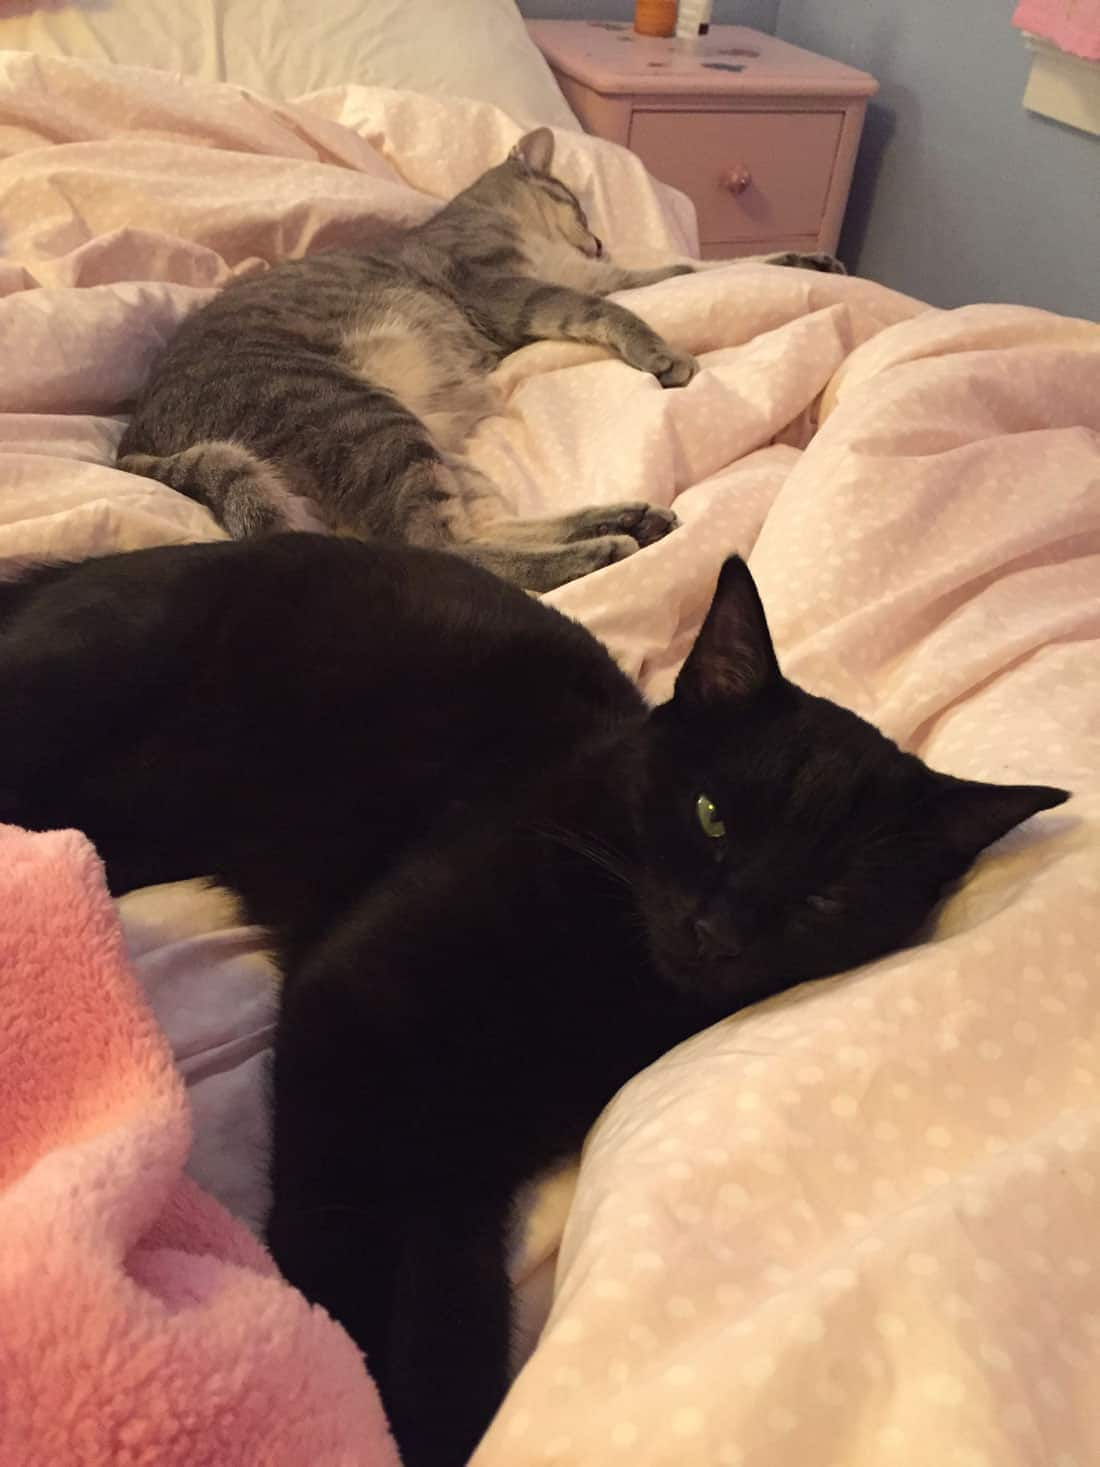 A black cat and a gray tabby sleeping on a bed.